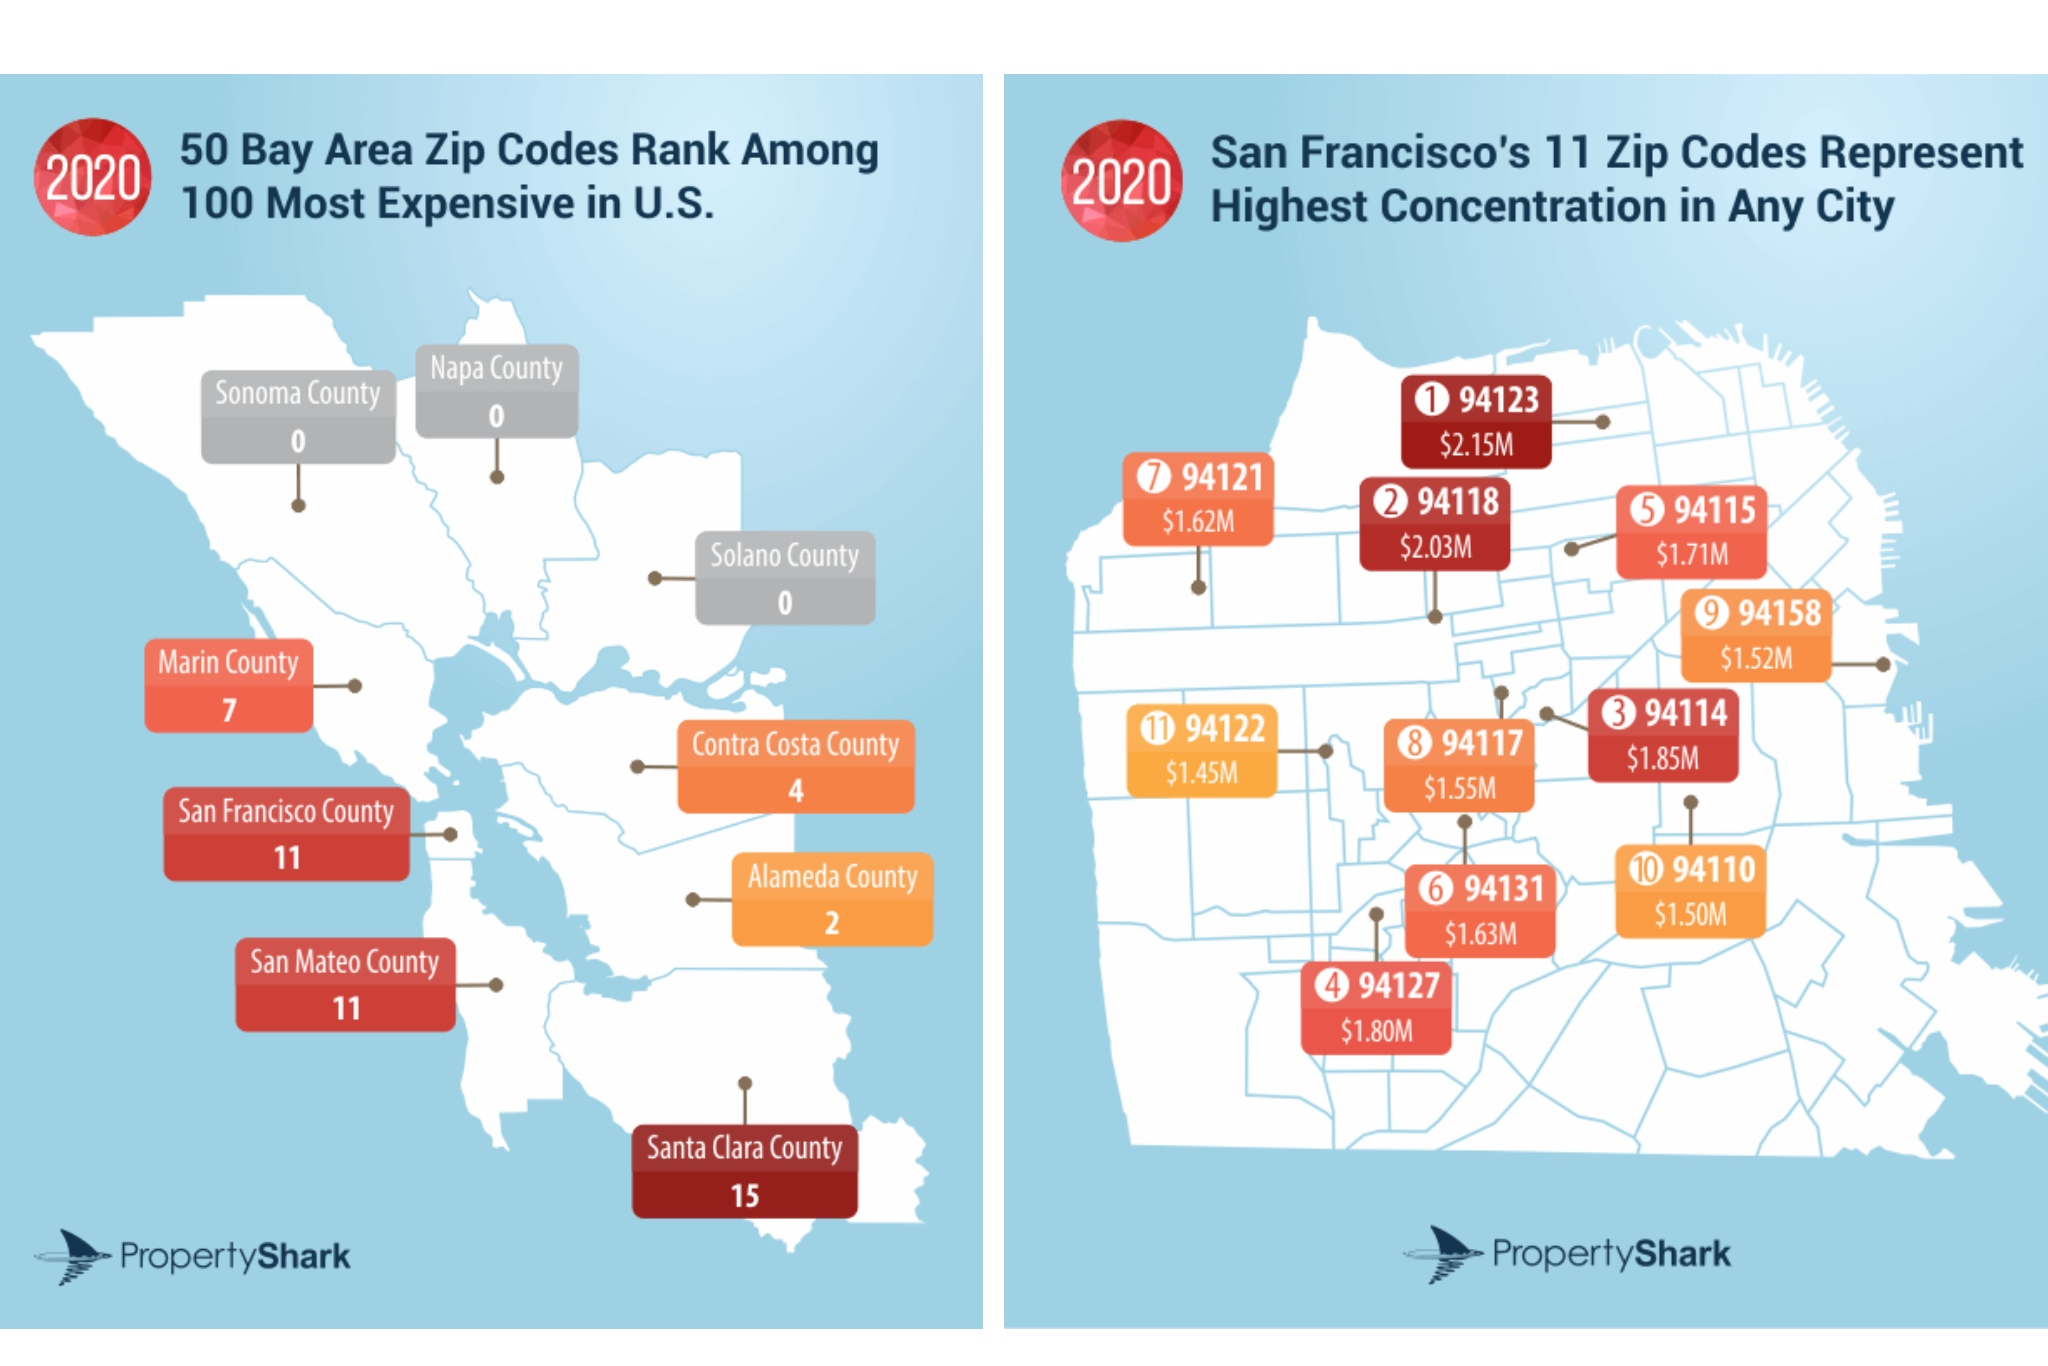 Bay Area Map By Zip Code – See maps and find more information about zip codes on cybo.